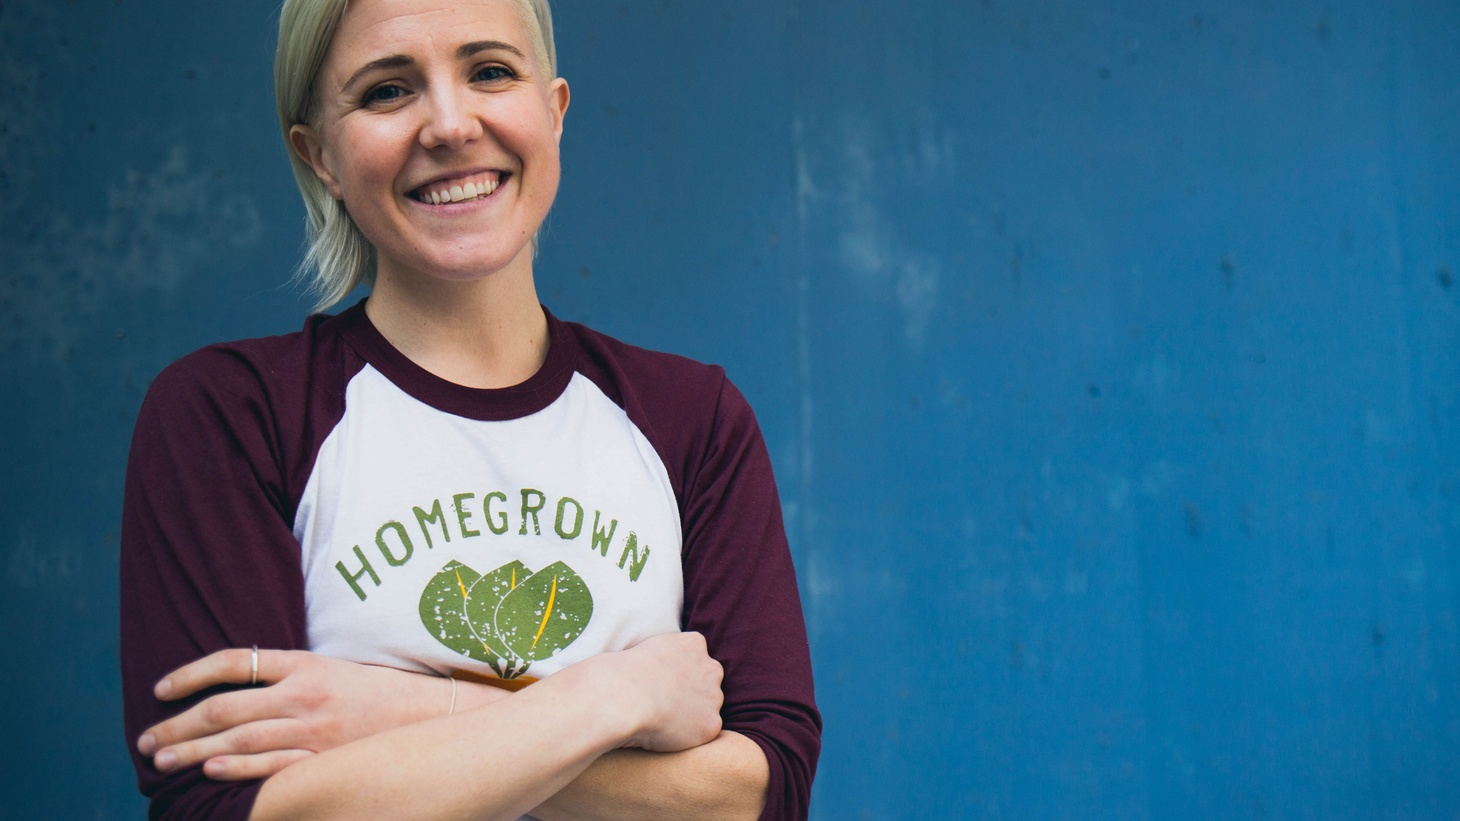 YouTube star Hannah Hart's personal Guest DJ set focuses on songs that reflect her life's struggles, including coming to terms with her sexuality.